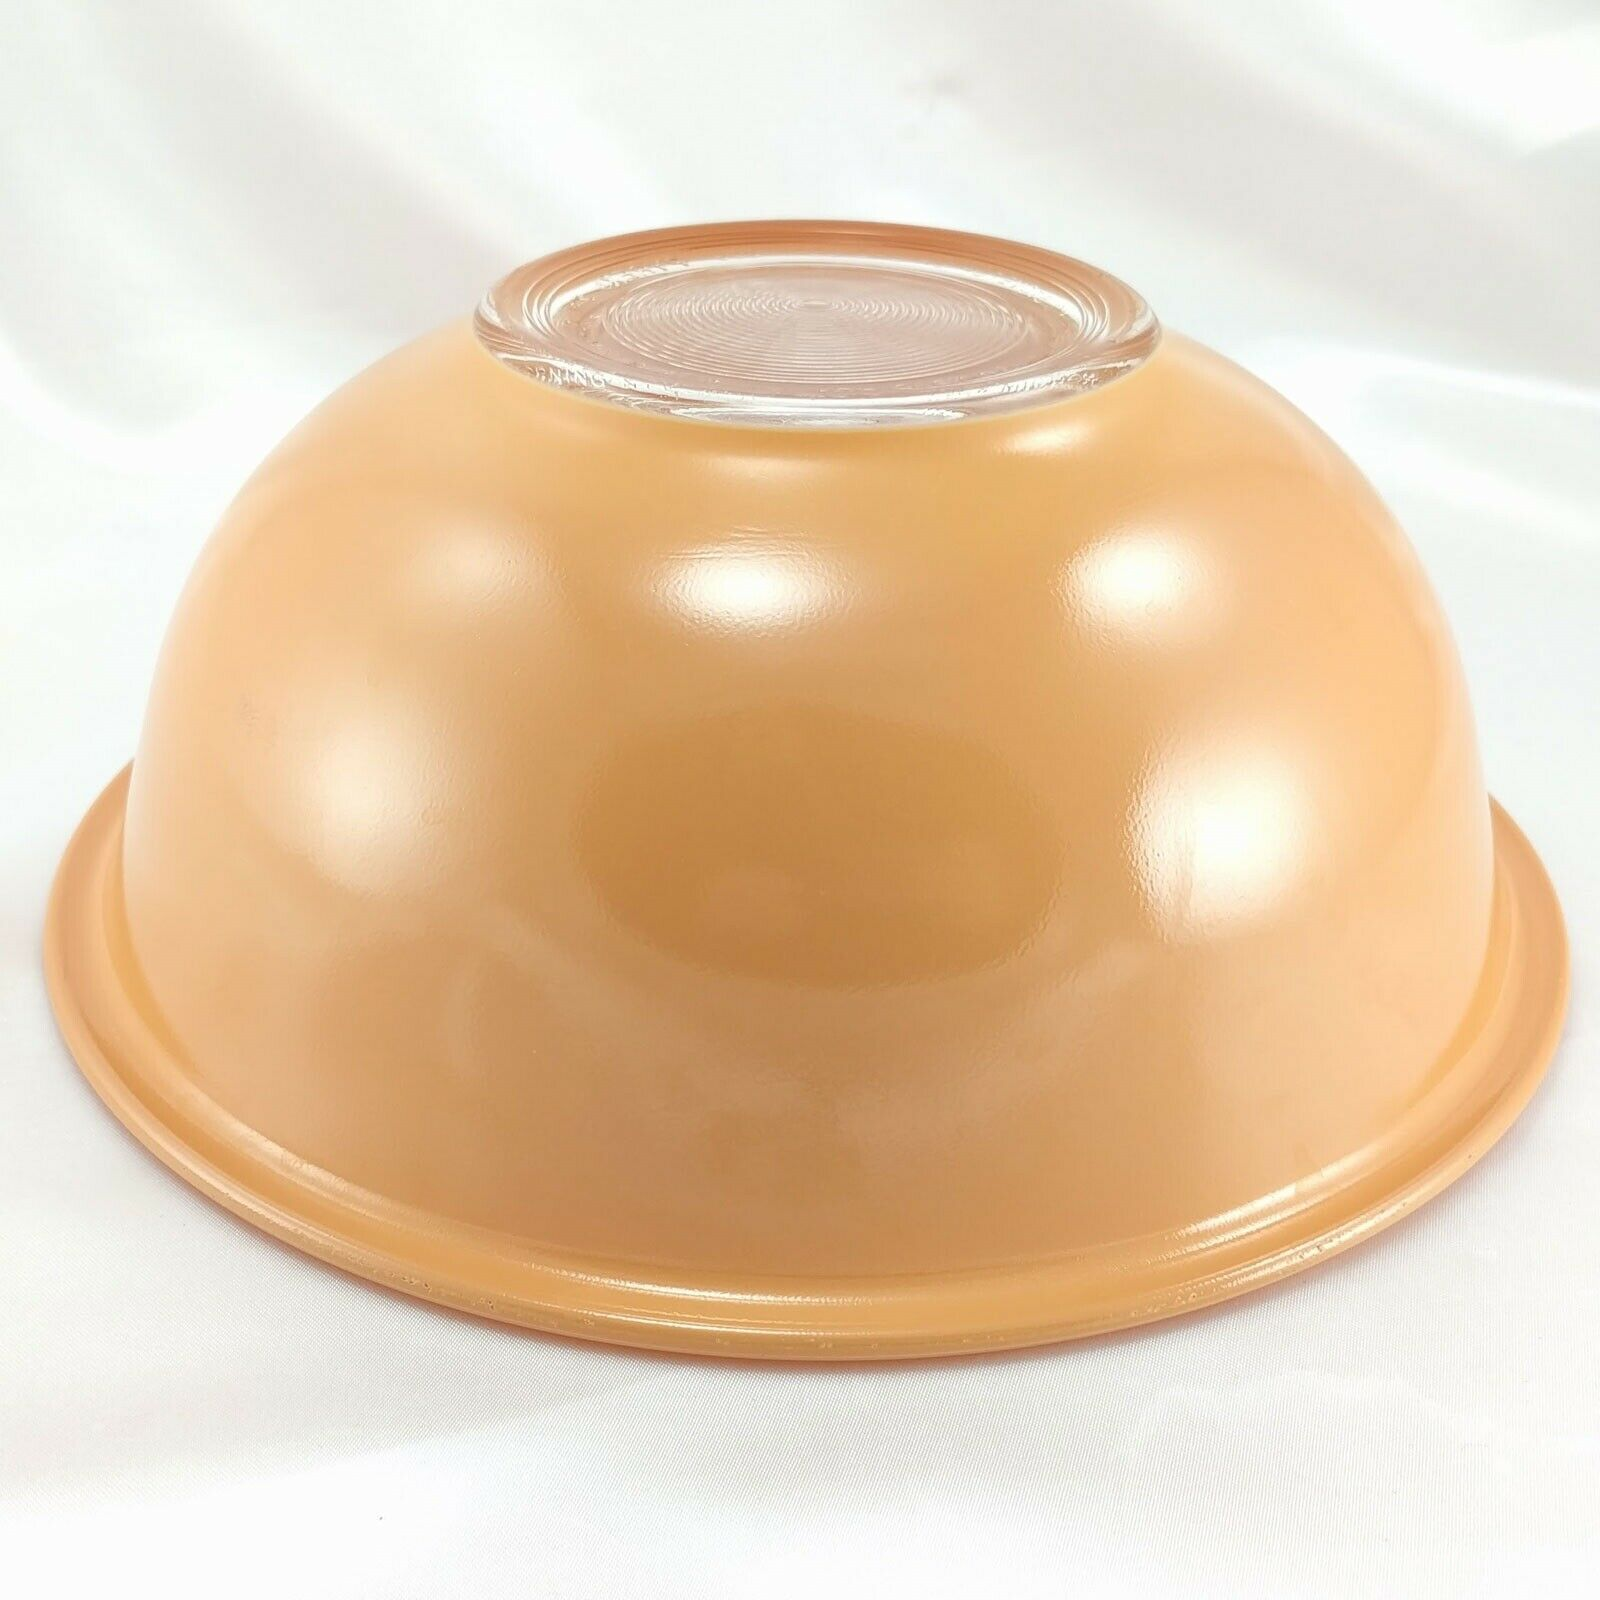 Pyrex 325 Clear Bottom Bowl Beige & Tan Vintage 2½ qt Serving Made in the USA image 3